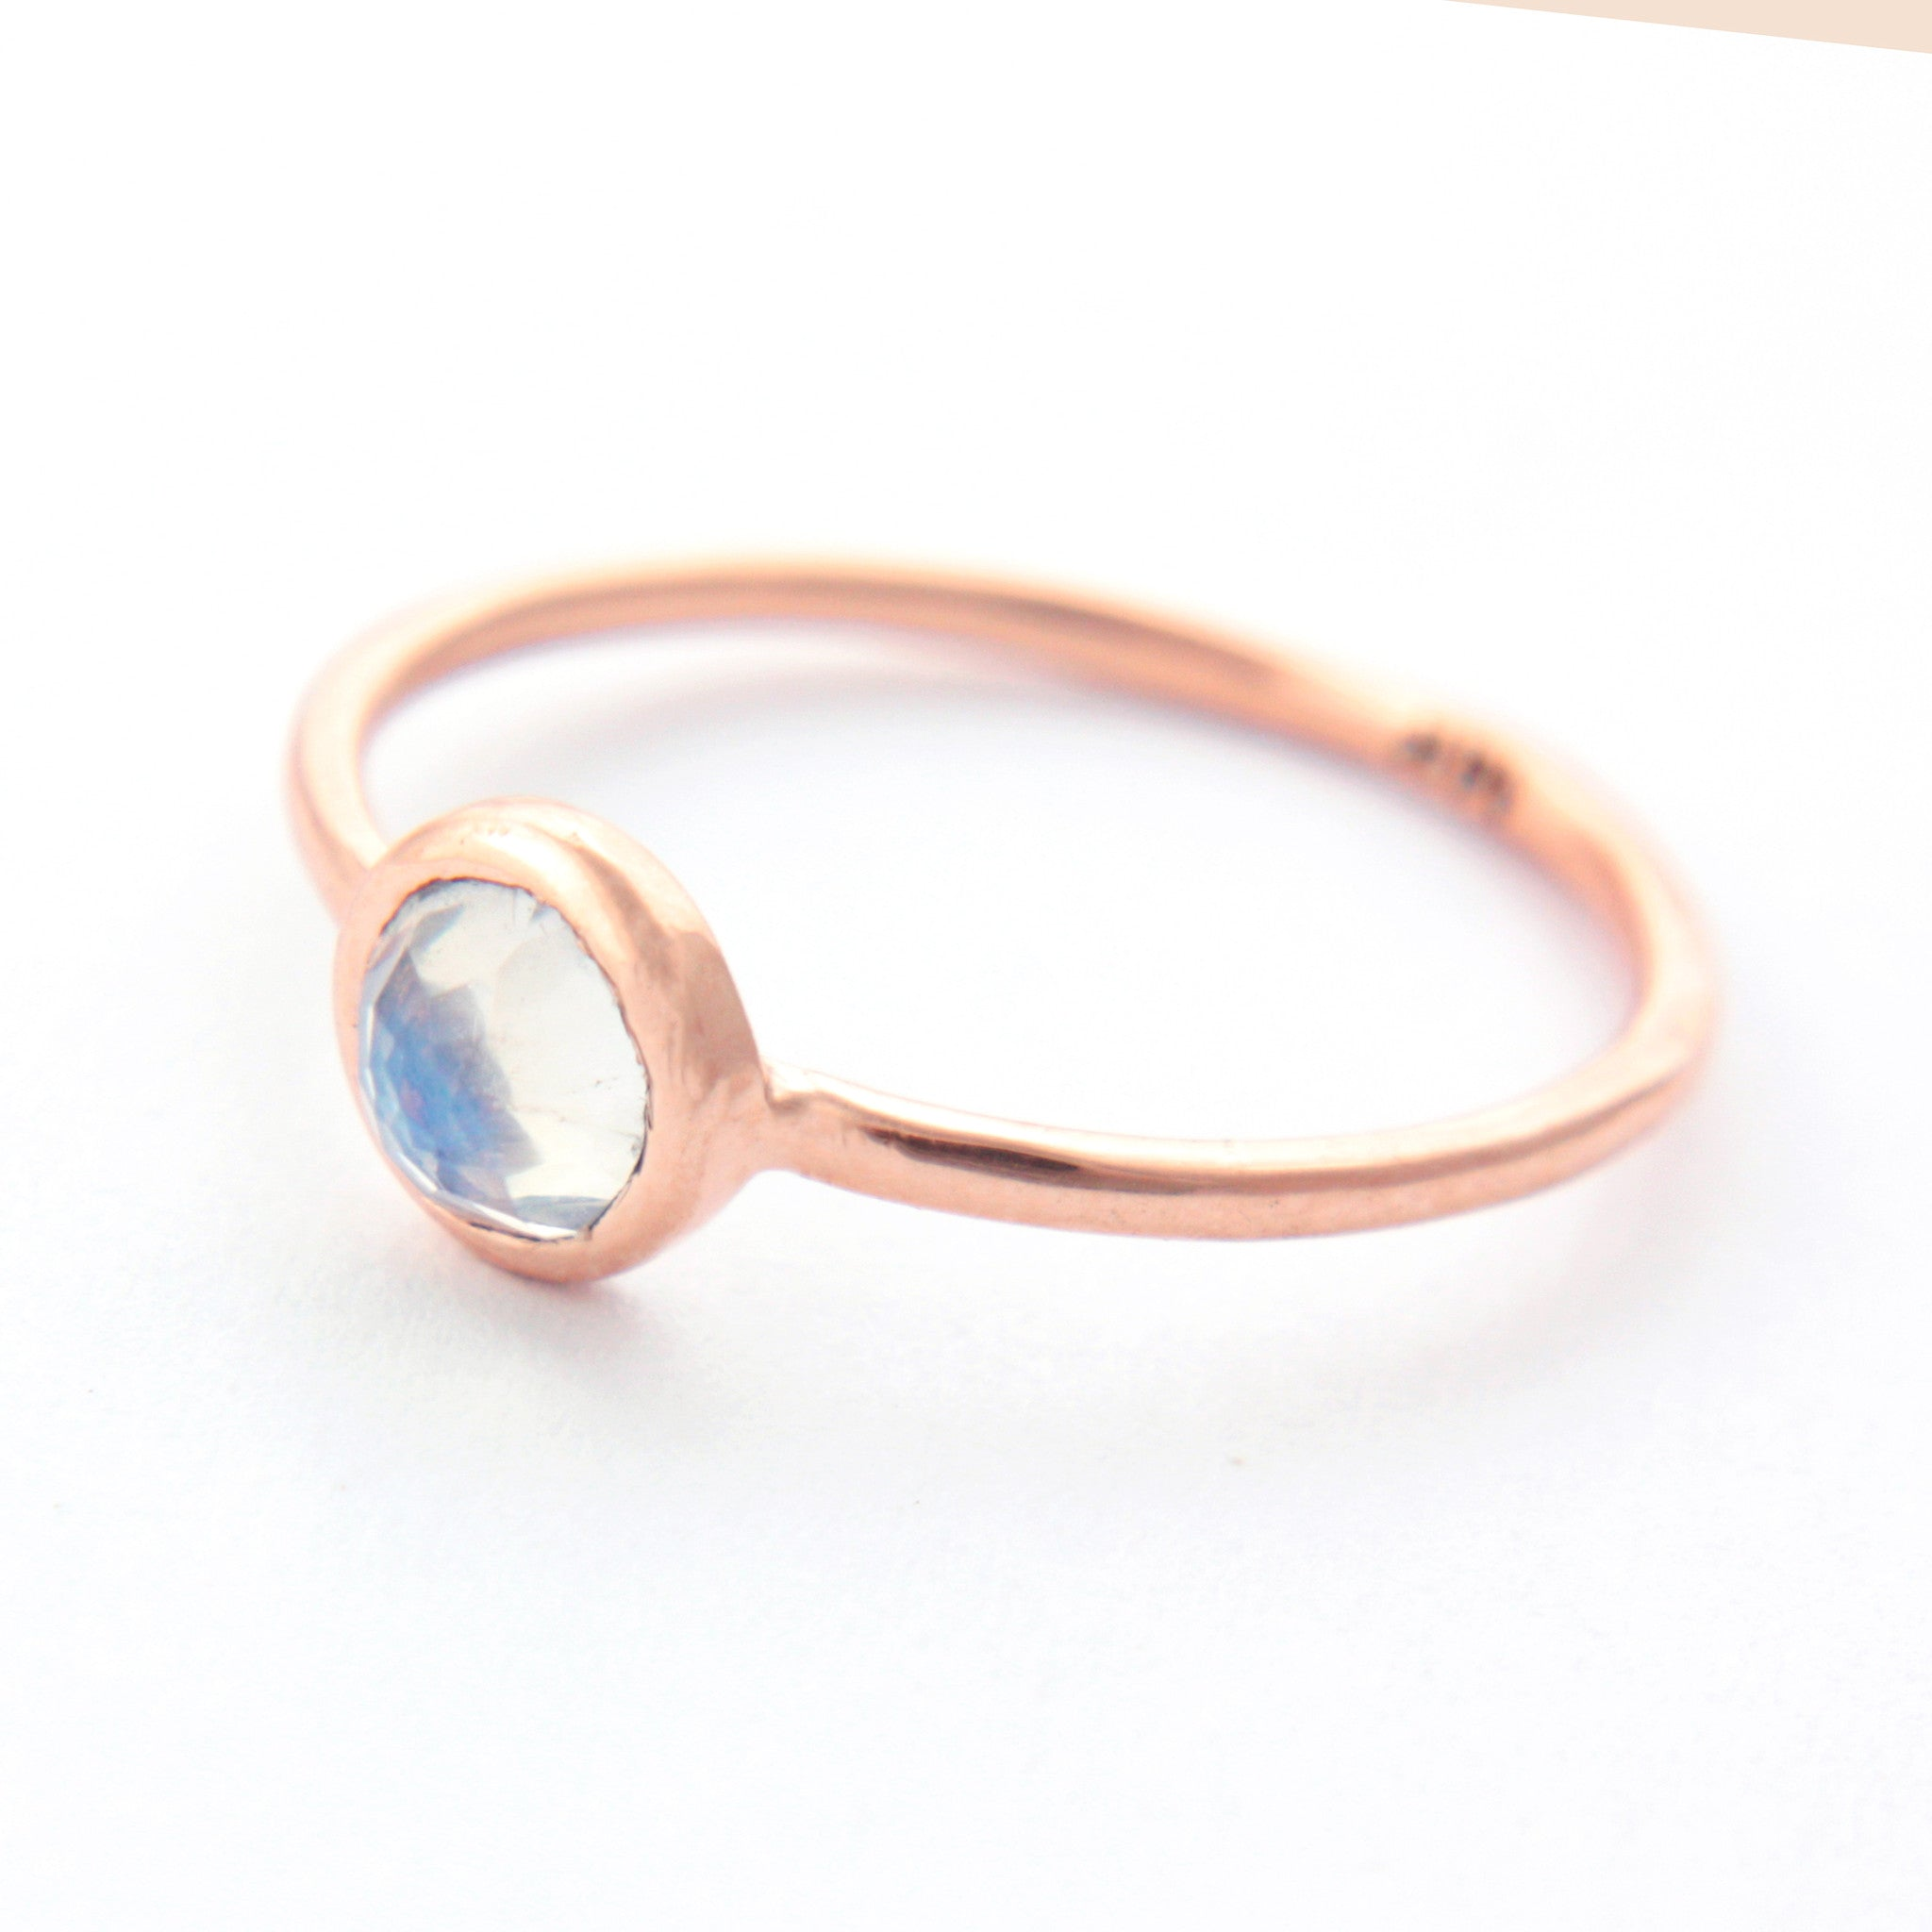 l n plated metcalfe single d ring s bronze i jewellery e img product rings tessa u claw f gold o